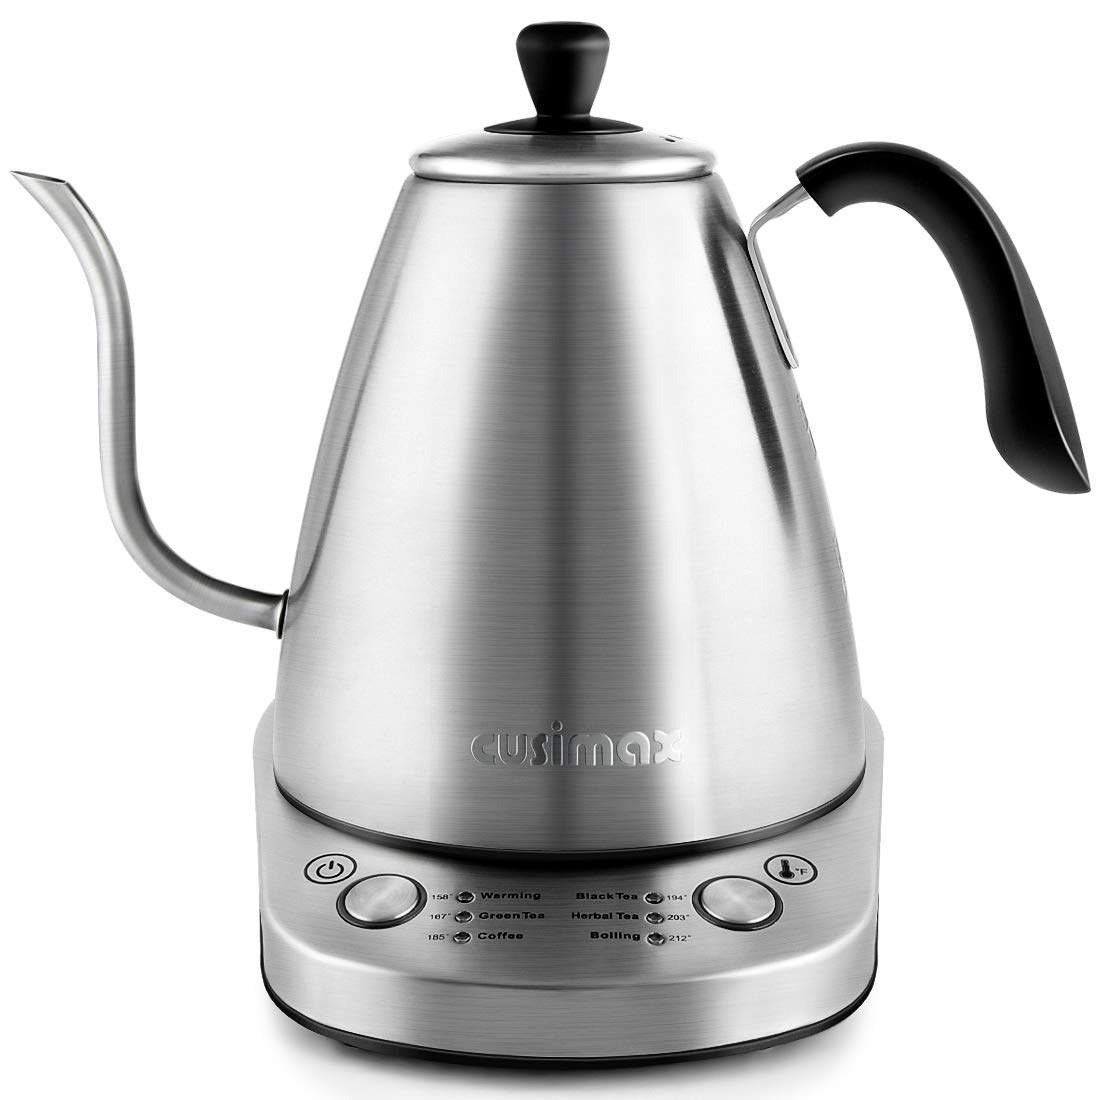 Gooseneck Tea Kettle, Cusimax Electric Kettle 1L, Variable kettle with 6 Temperatures Pour Over for Drip Coffee and Tea, Stainless Steel Kettle with Auto Keep Warming and Boil-Dry Protection, 1000W